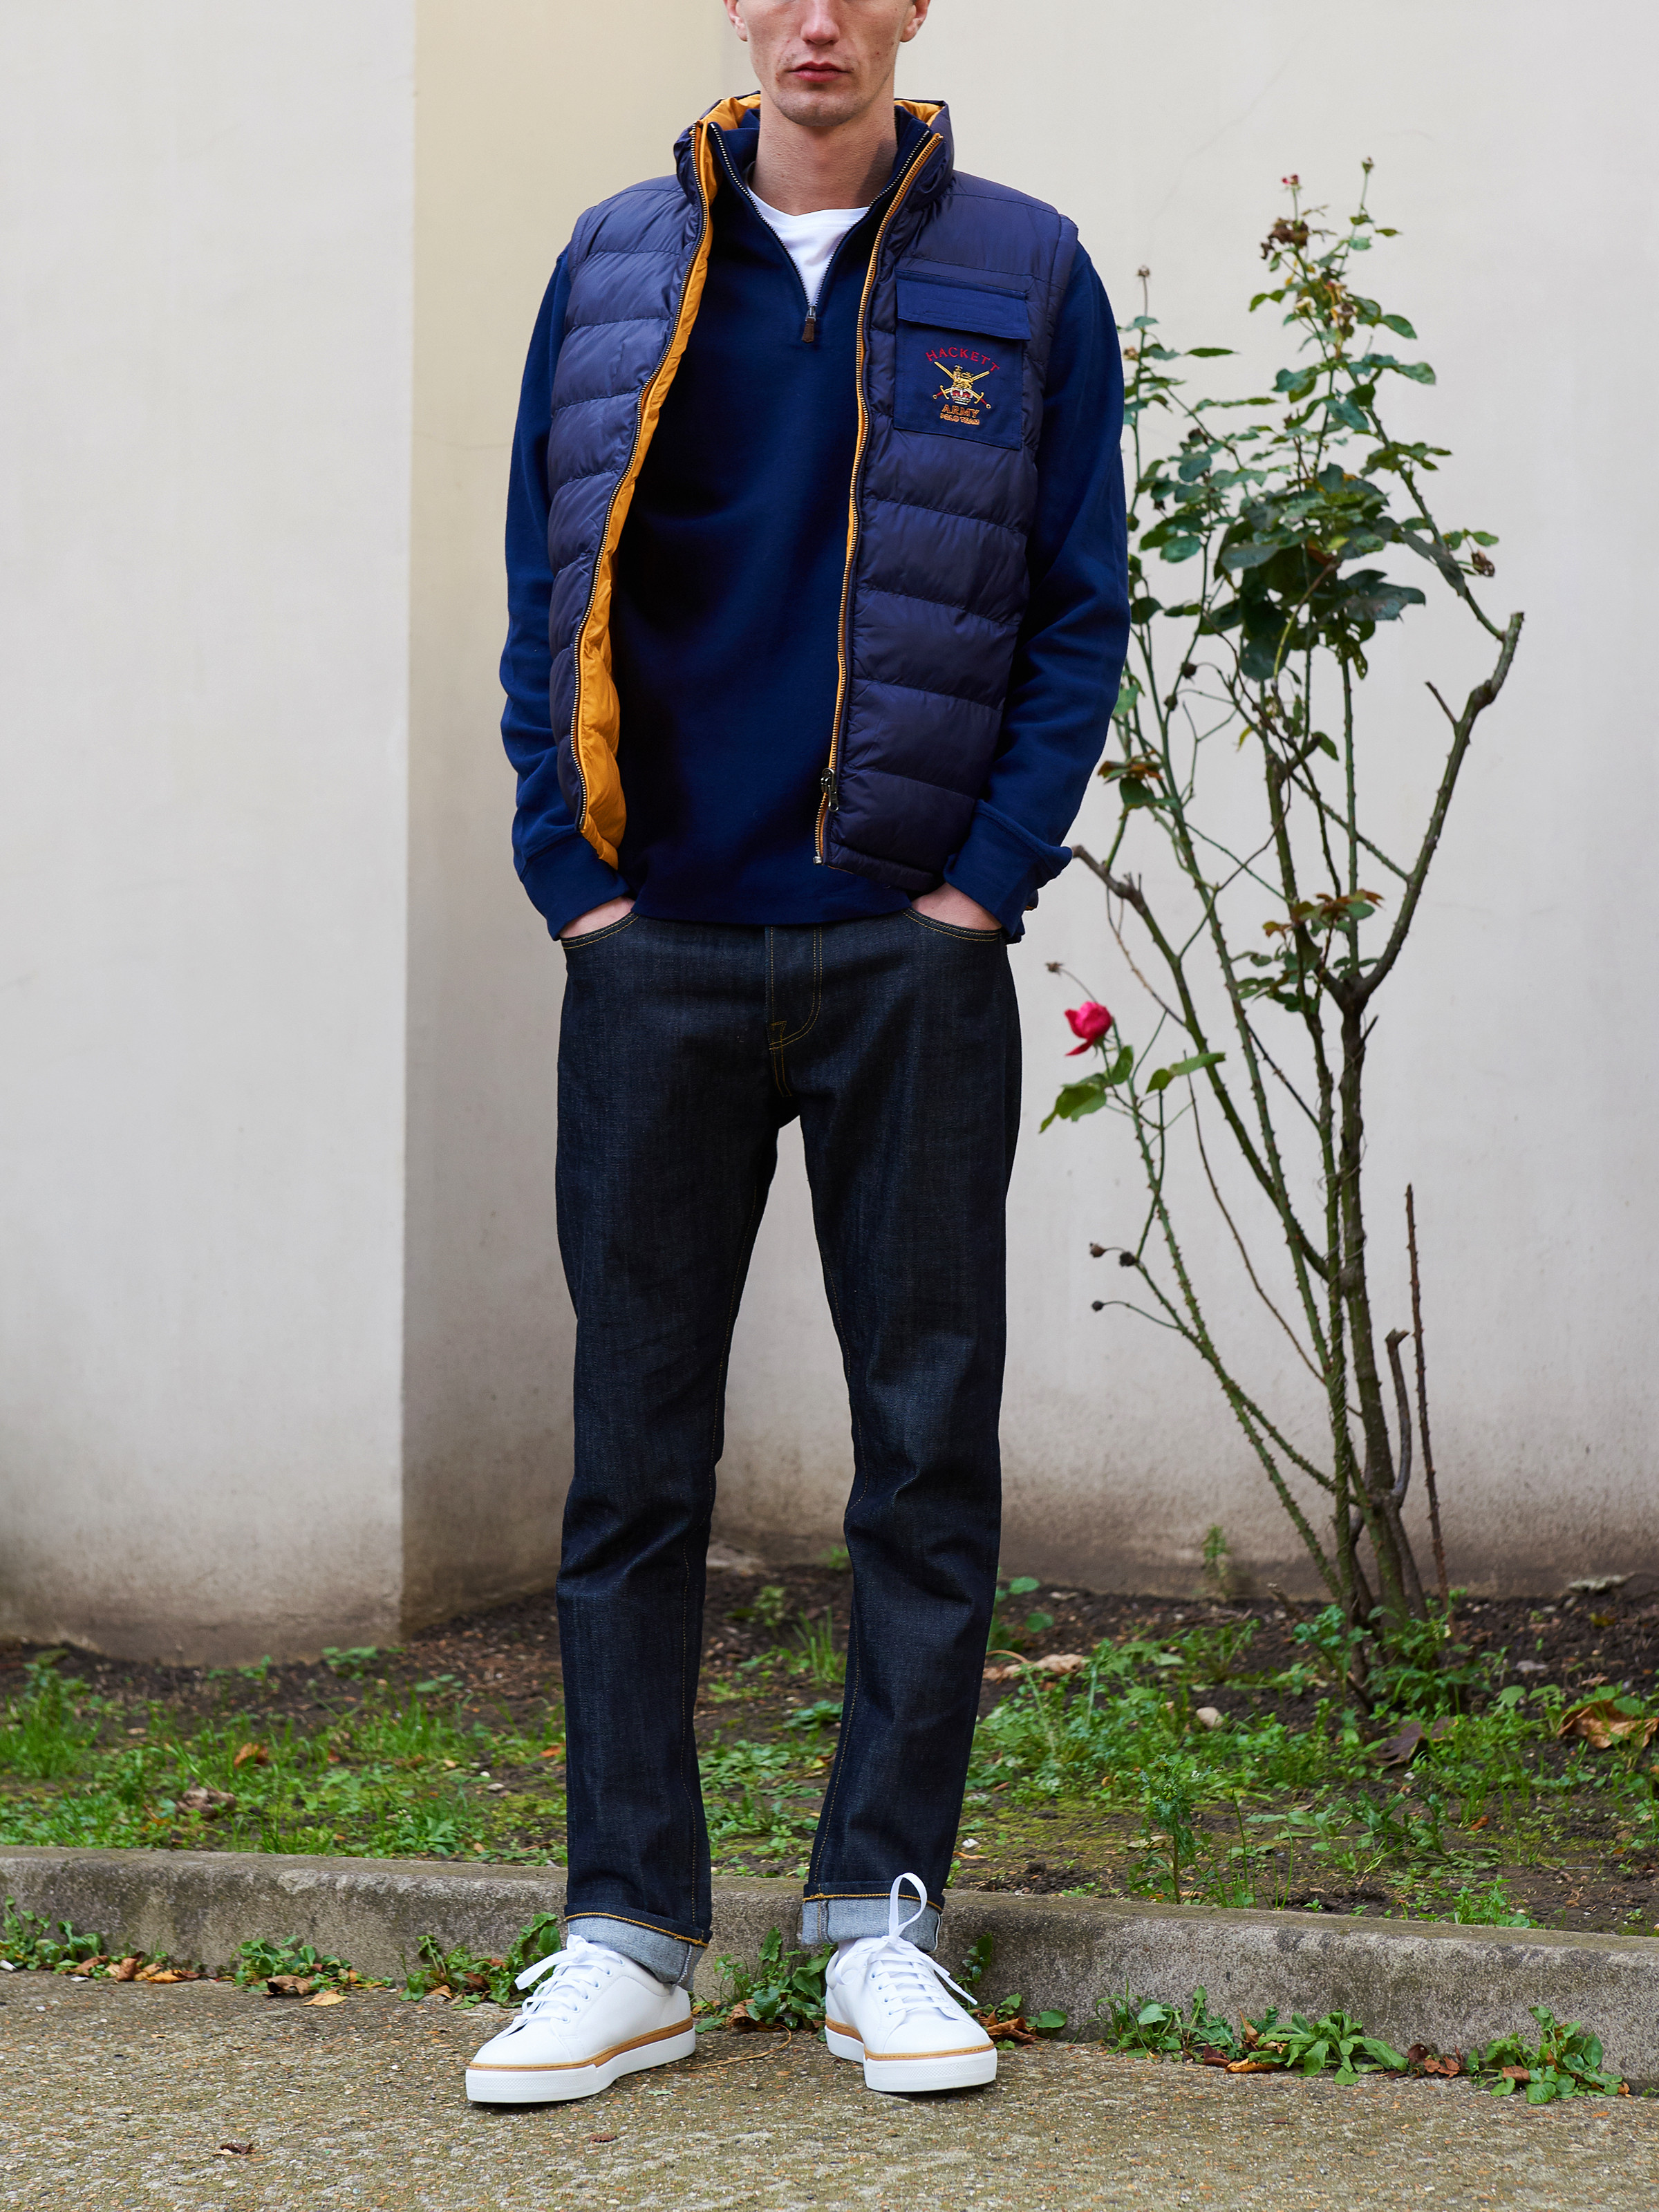 Men's outfit idea for 2021 with navy vest, half-zip / half-button sweater, white crew neck t-shirt, dark blue jeans, white sneakers. Suitable for fall and winter.